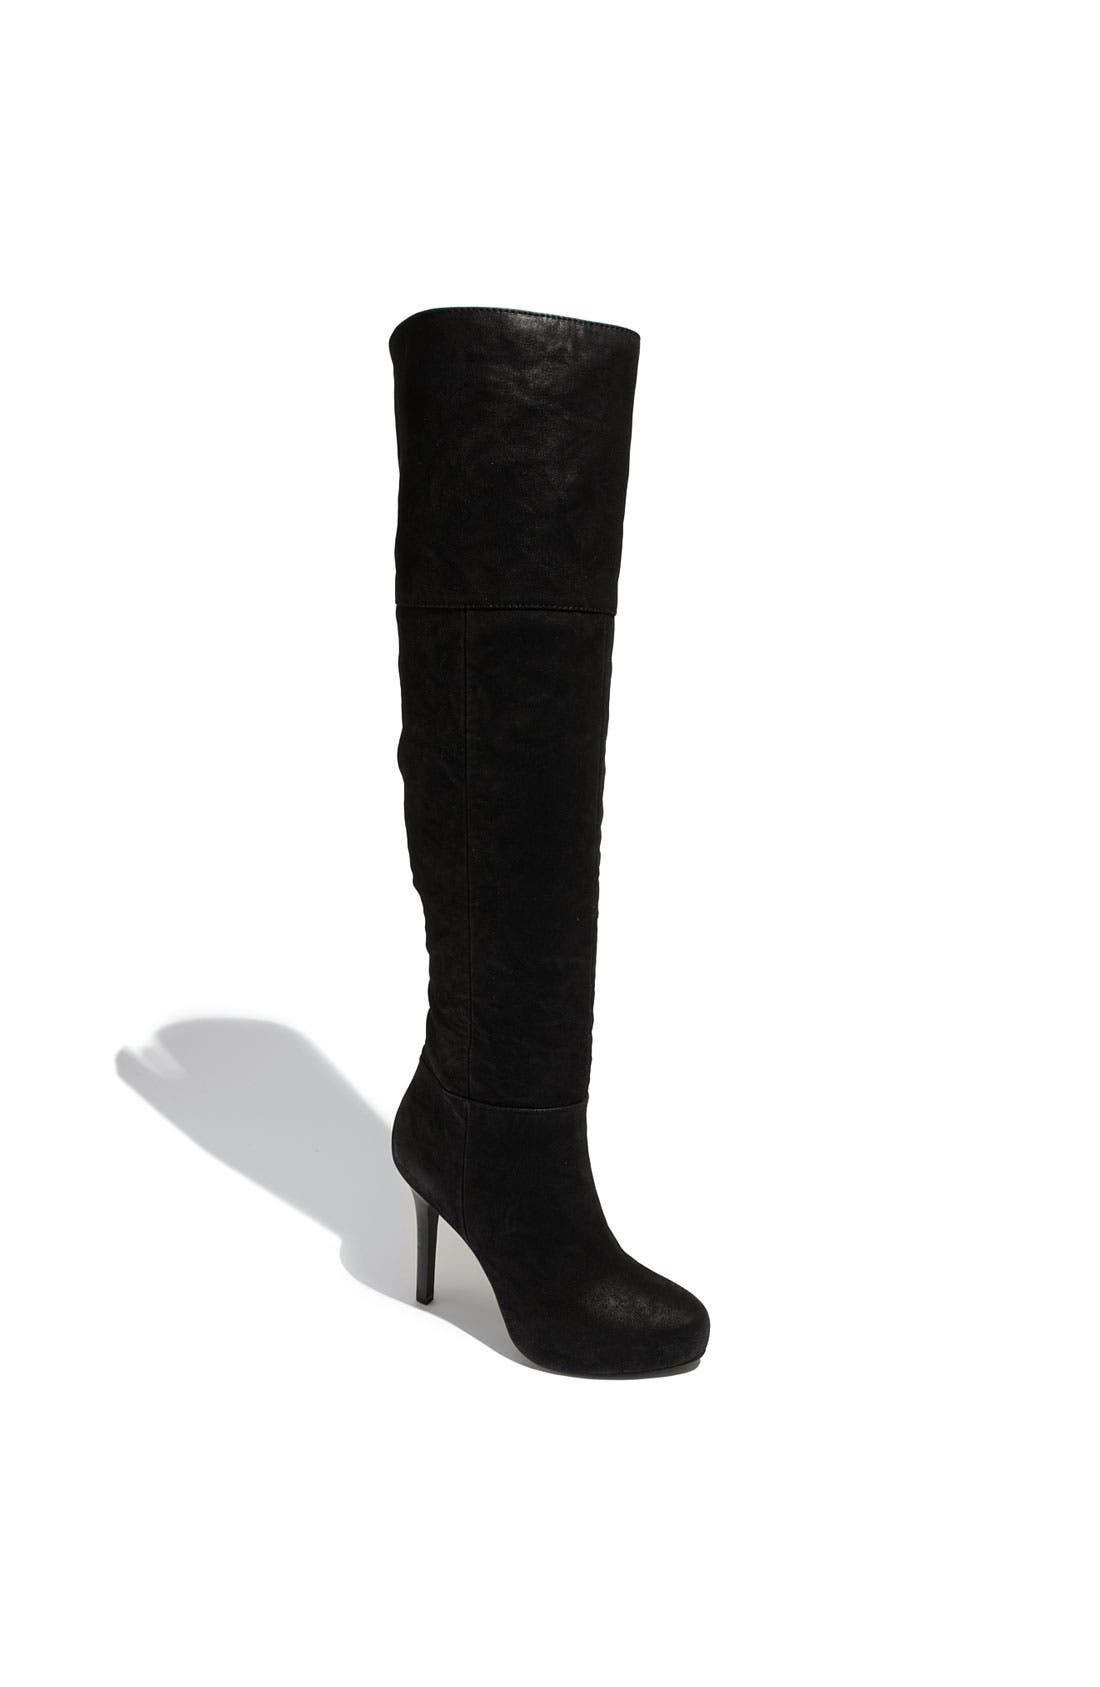 Main Image - REPORT 'Nichola' Over the Knee Boot